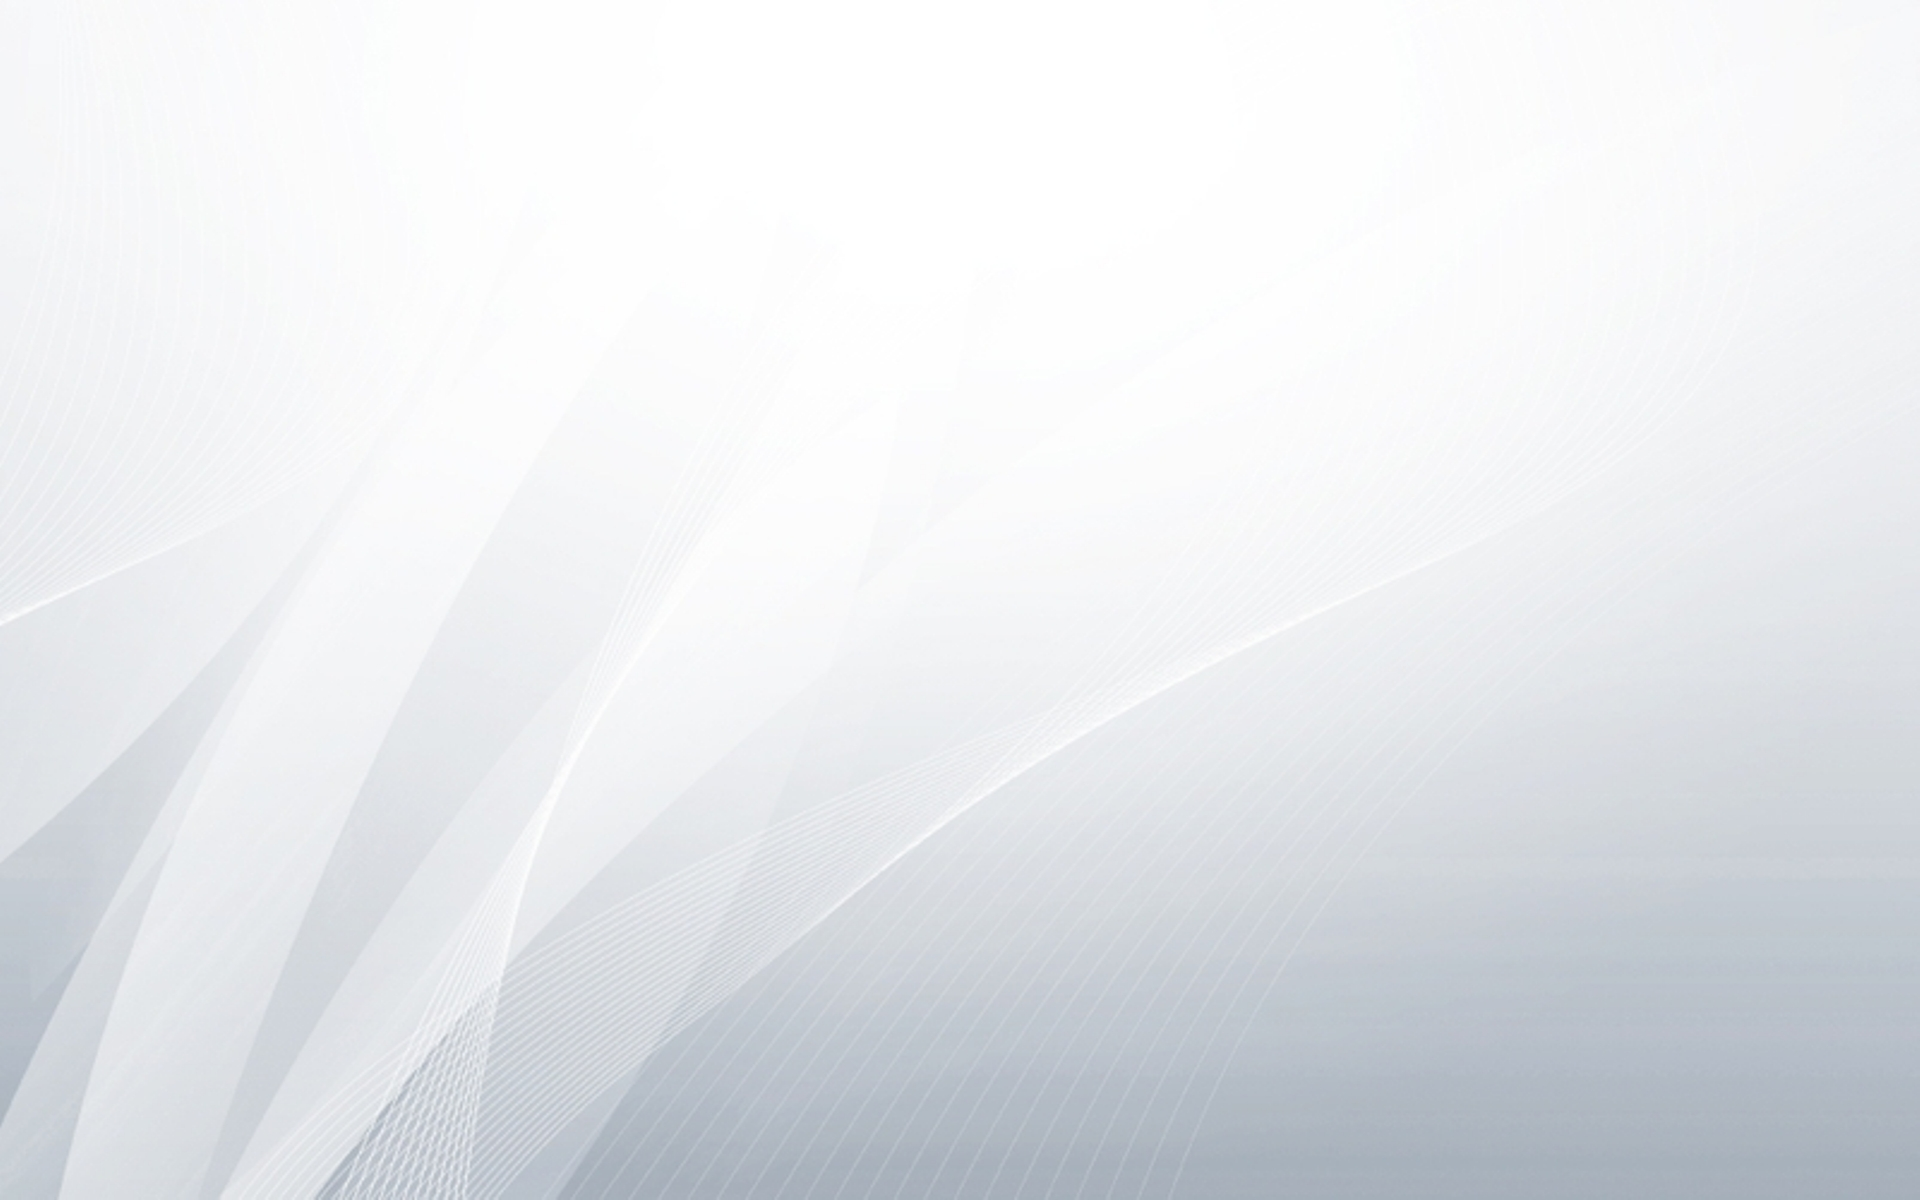 White Abstract Backgrounds Images amp Pictures   Becuo 1920x1200